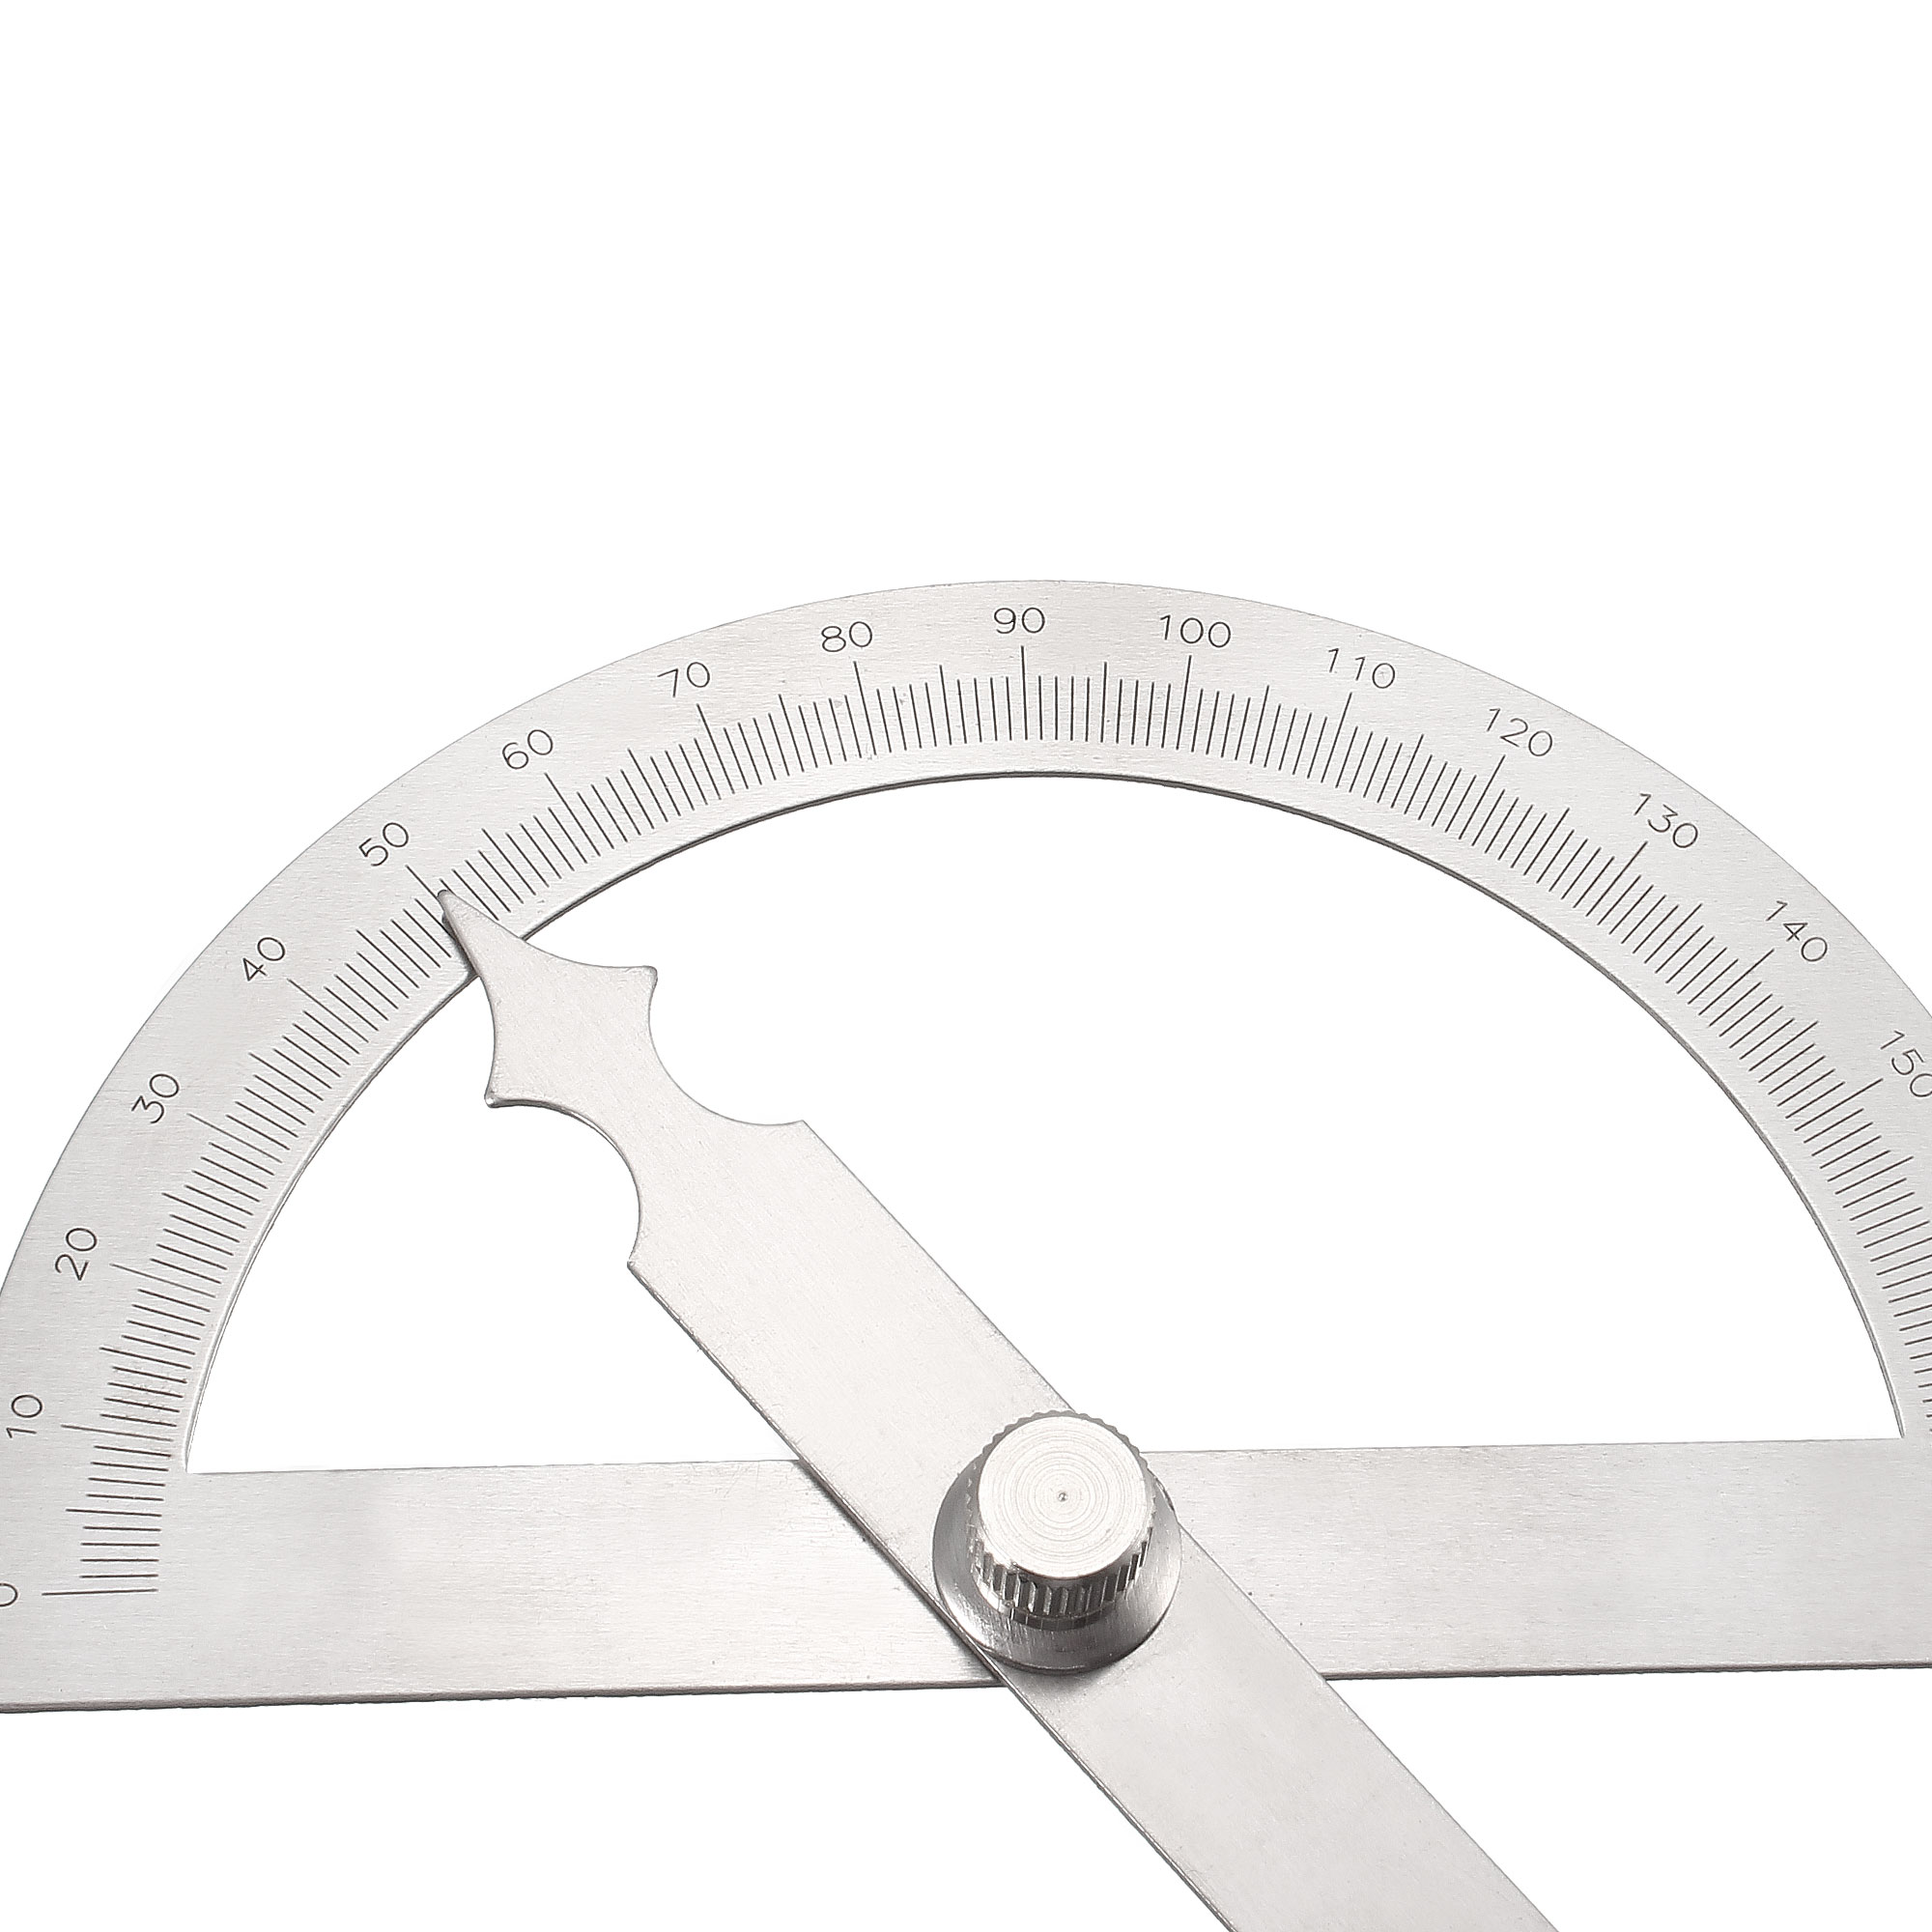 uxcell Protractor Angle Finder 0-180/° Round Head with 100mm Arm Measuring Ruler Tool Stainless Steel for Woodworking Drawing Architectural Design